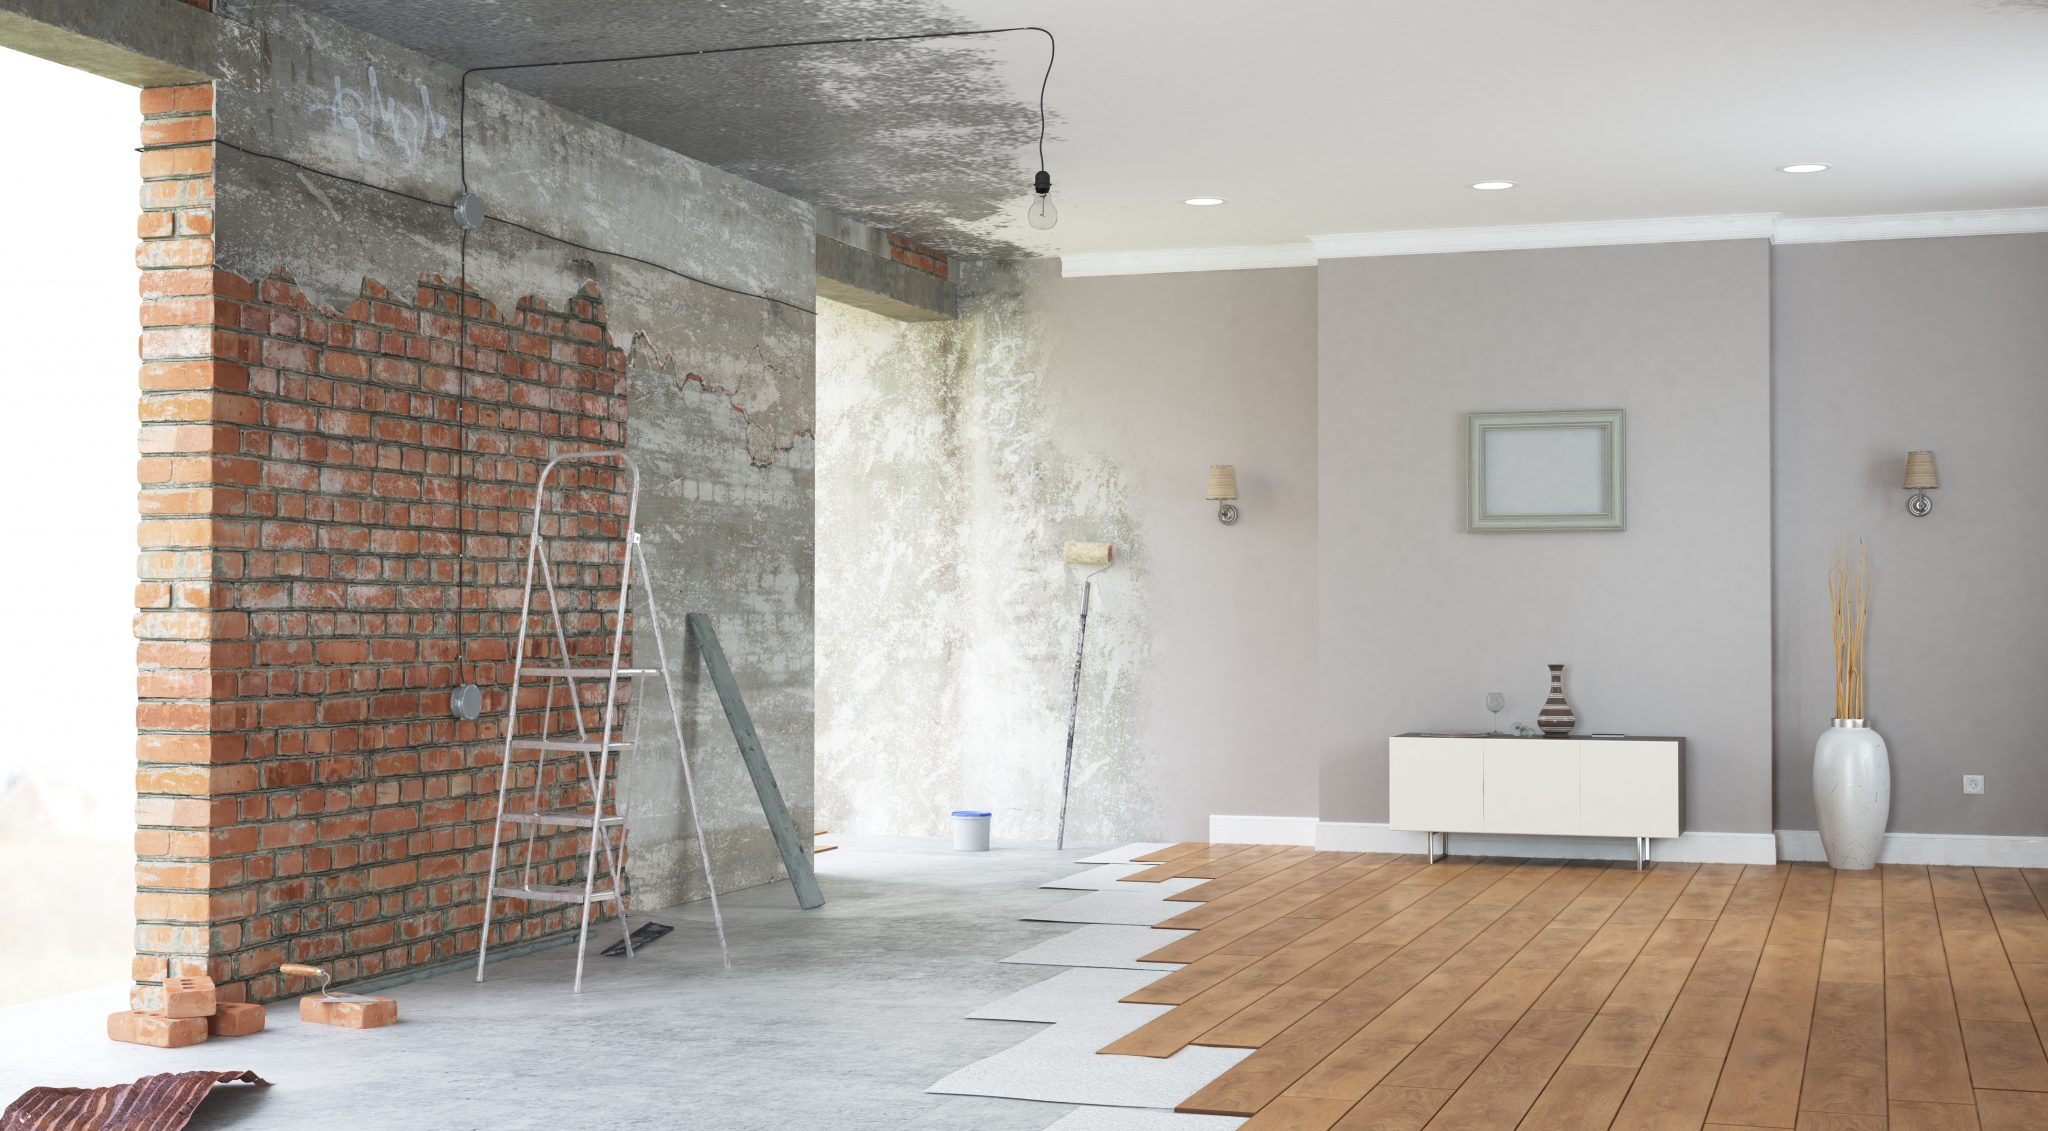 Our Comprehensive Mold Remediation Services